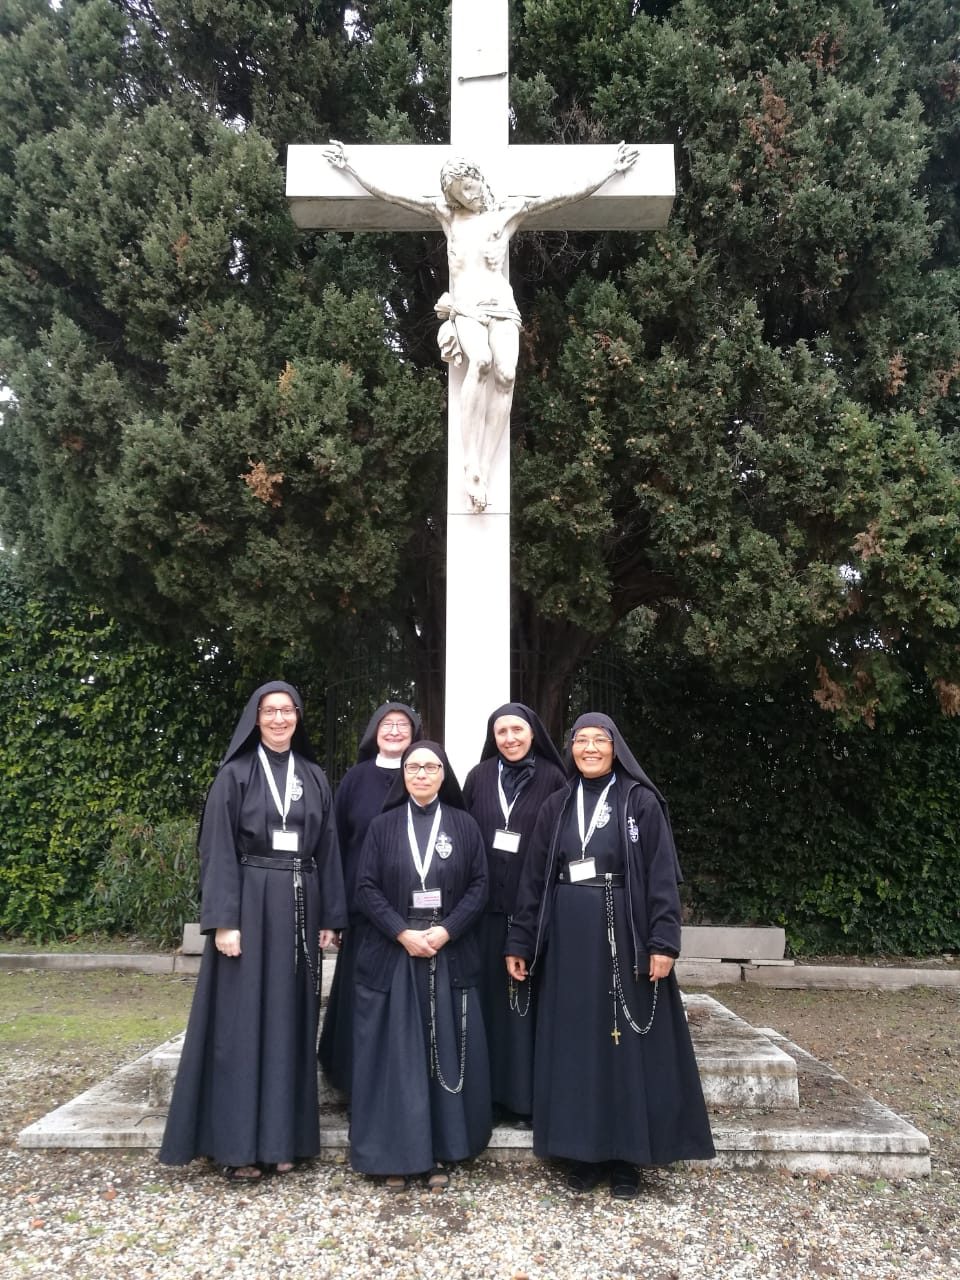 Sr. Daniela, Mother President Catherine Marie, Mother Ana Maria, Mother Gertrude, and Sr. Martina